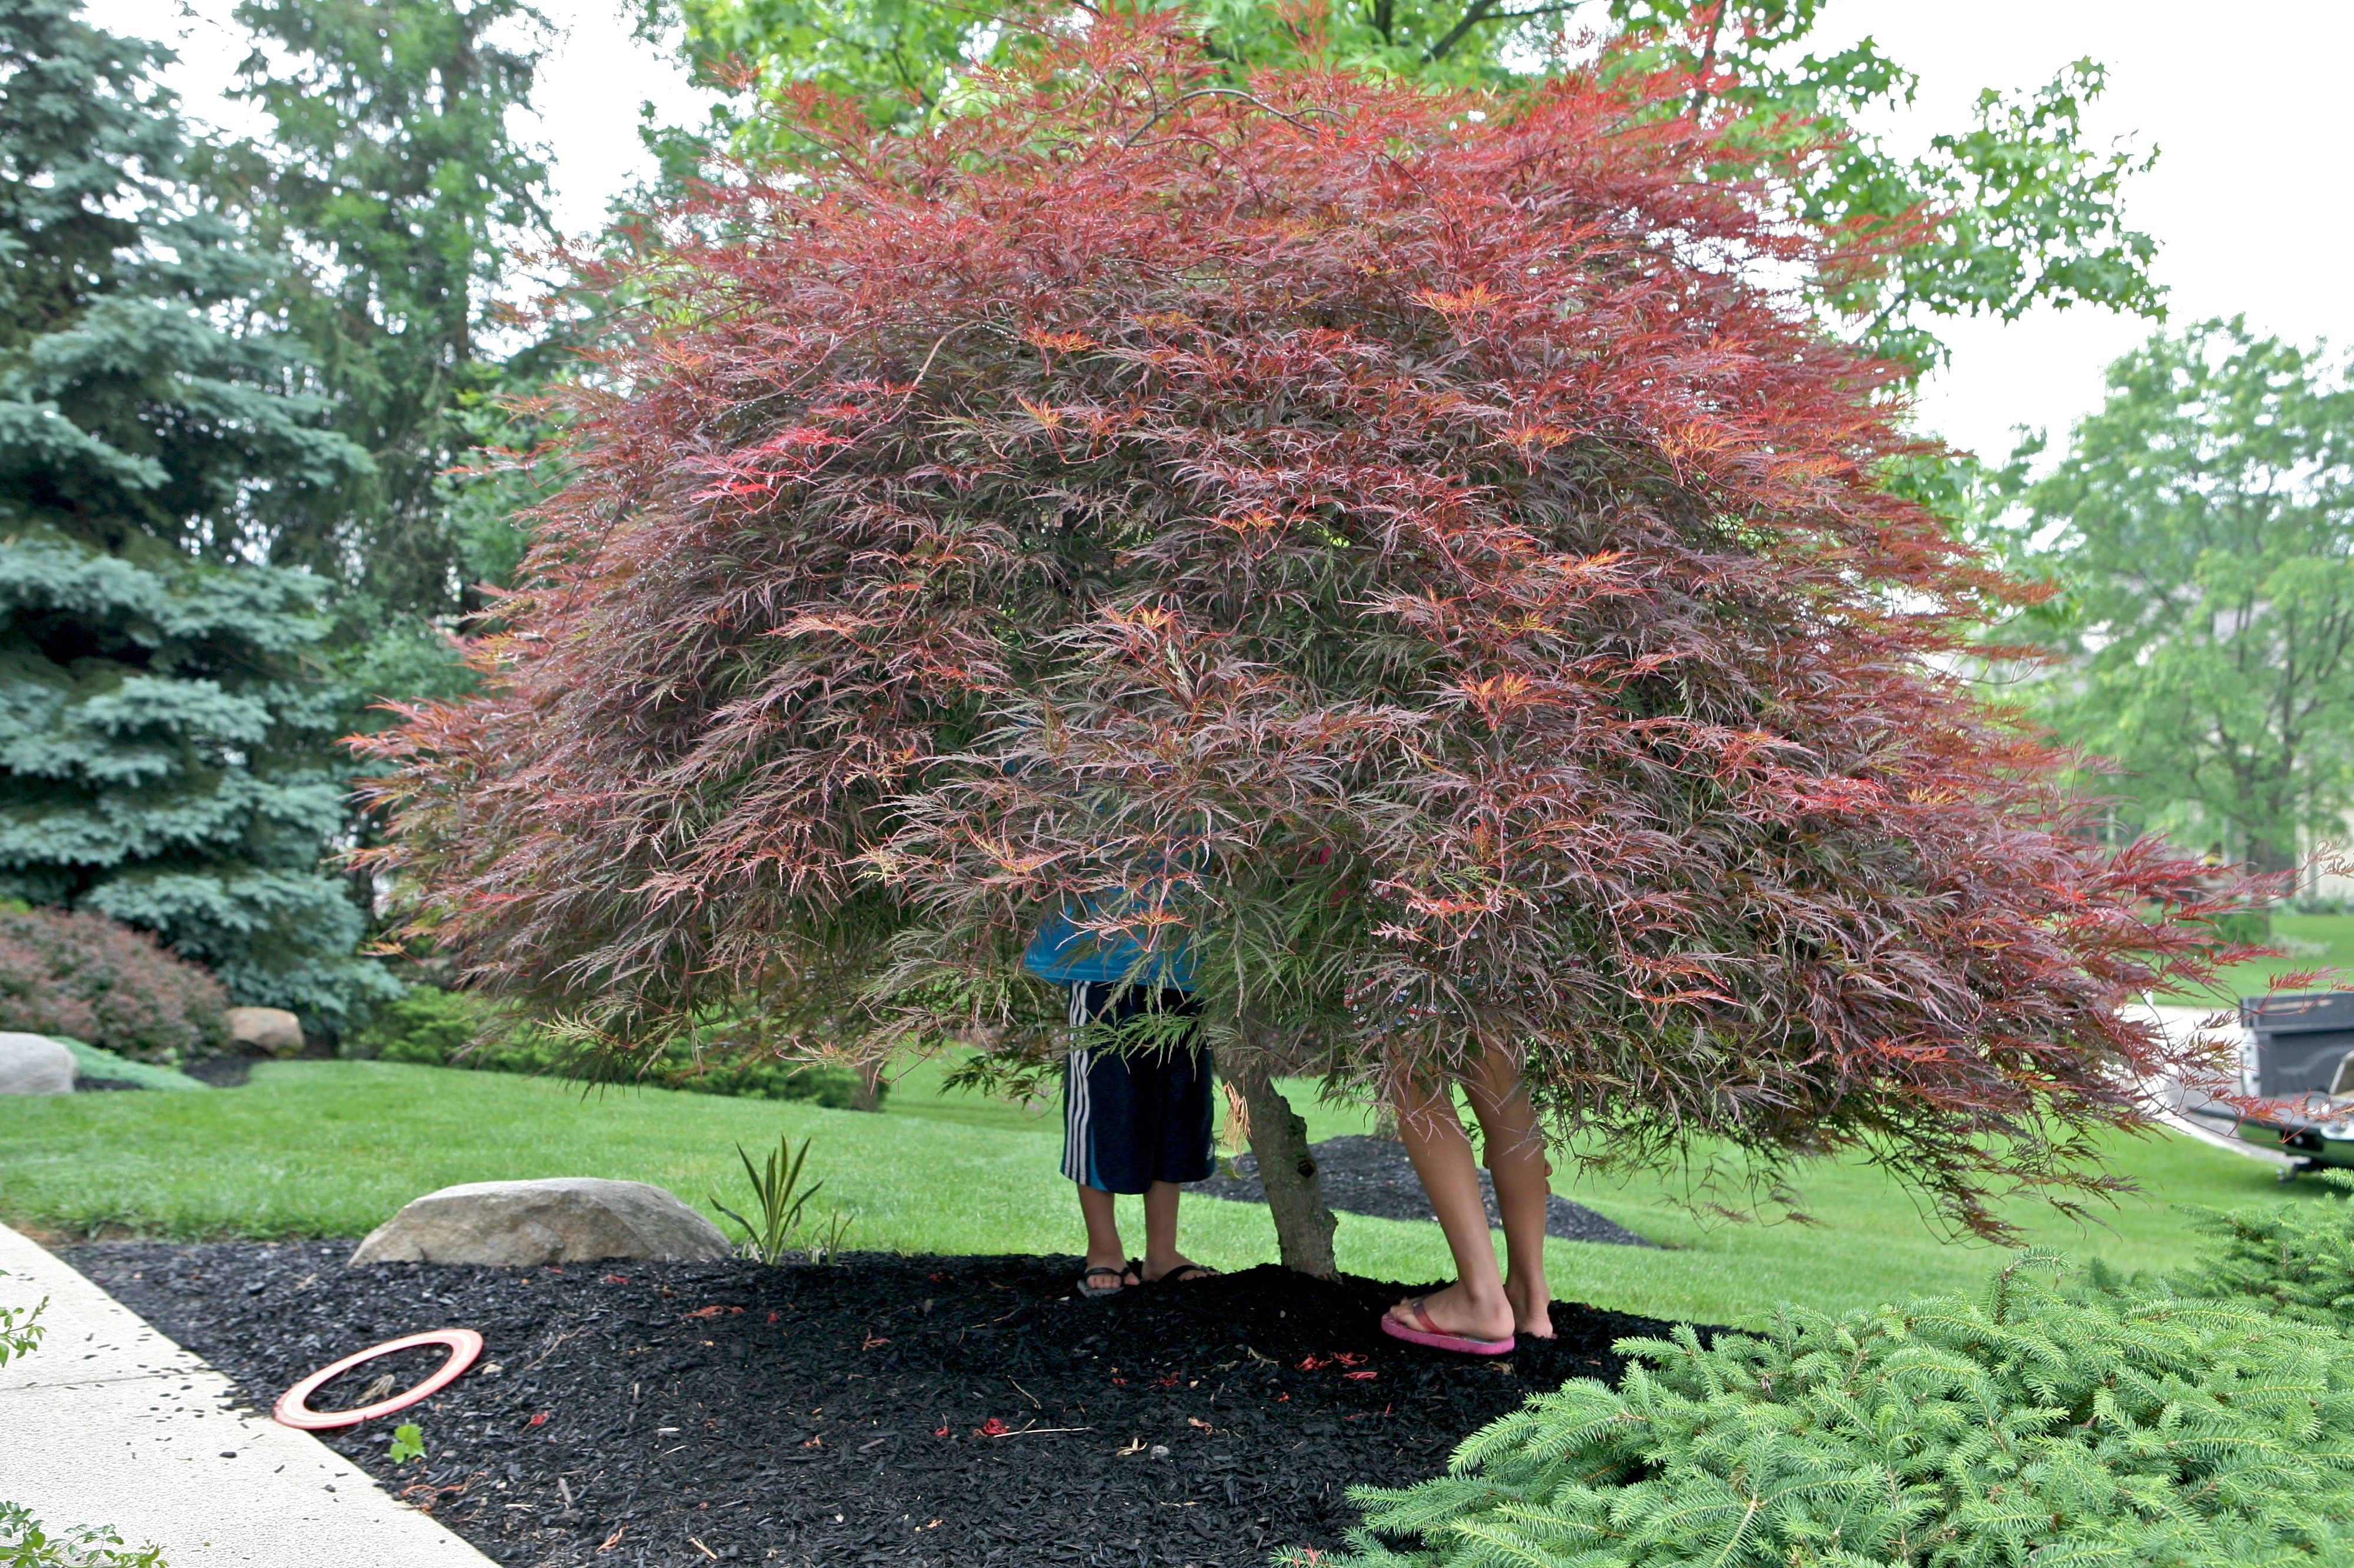 How to care for a fern leaf japanese maple - Japanese Maple Tree Under The Japanese Maple Tree